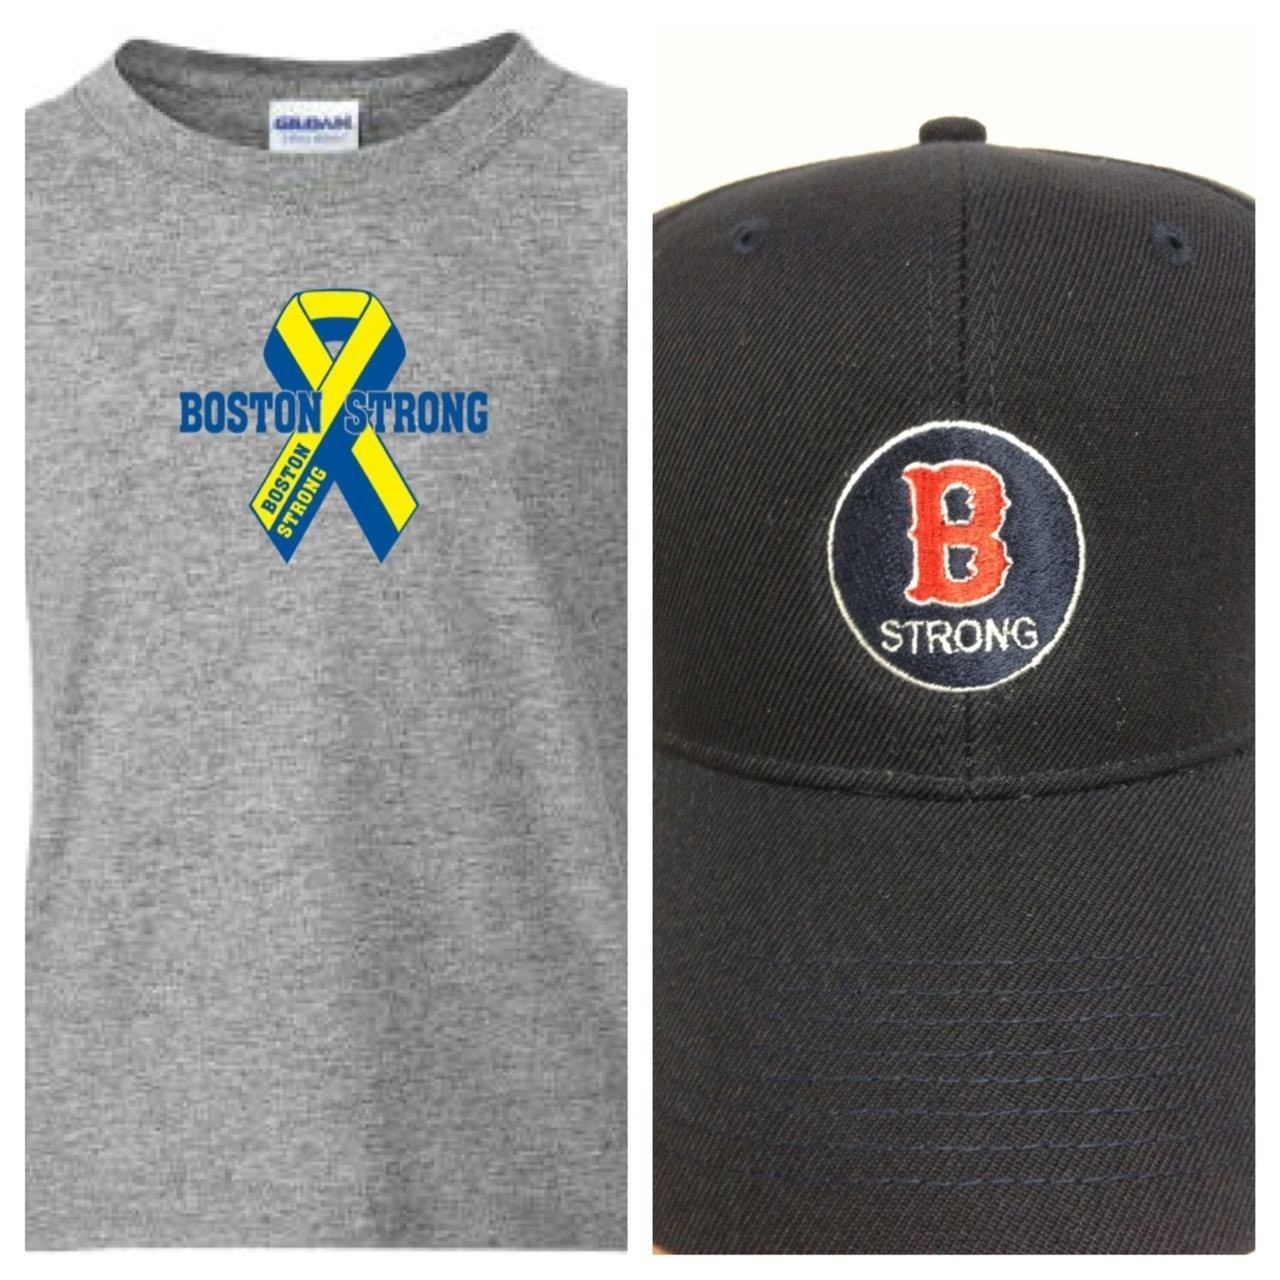 Boston Strong B Strong Apparel